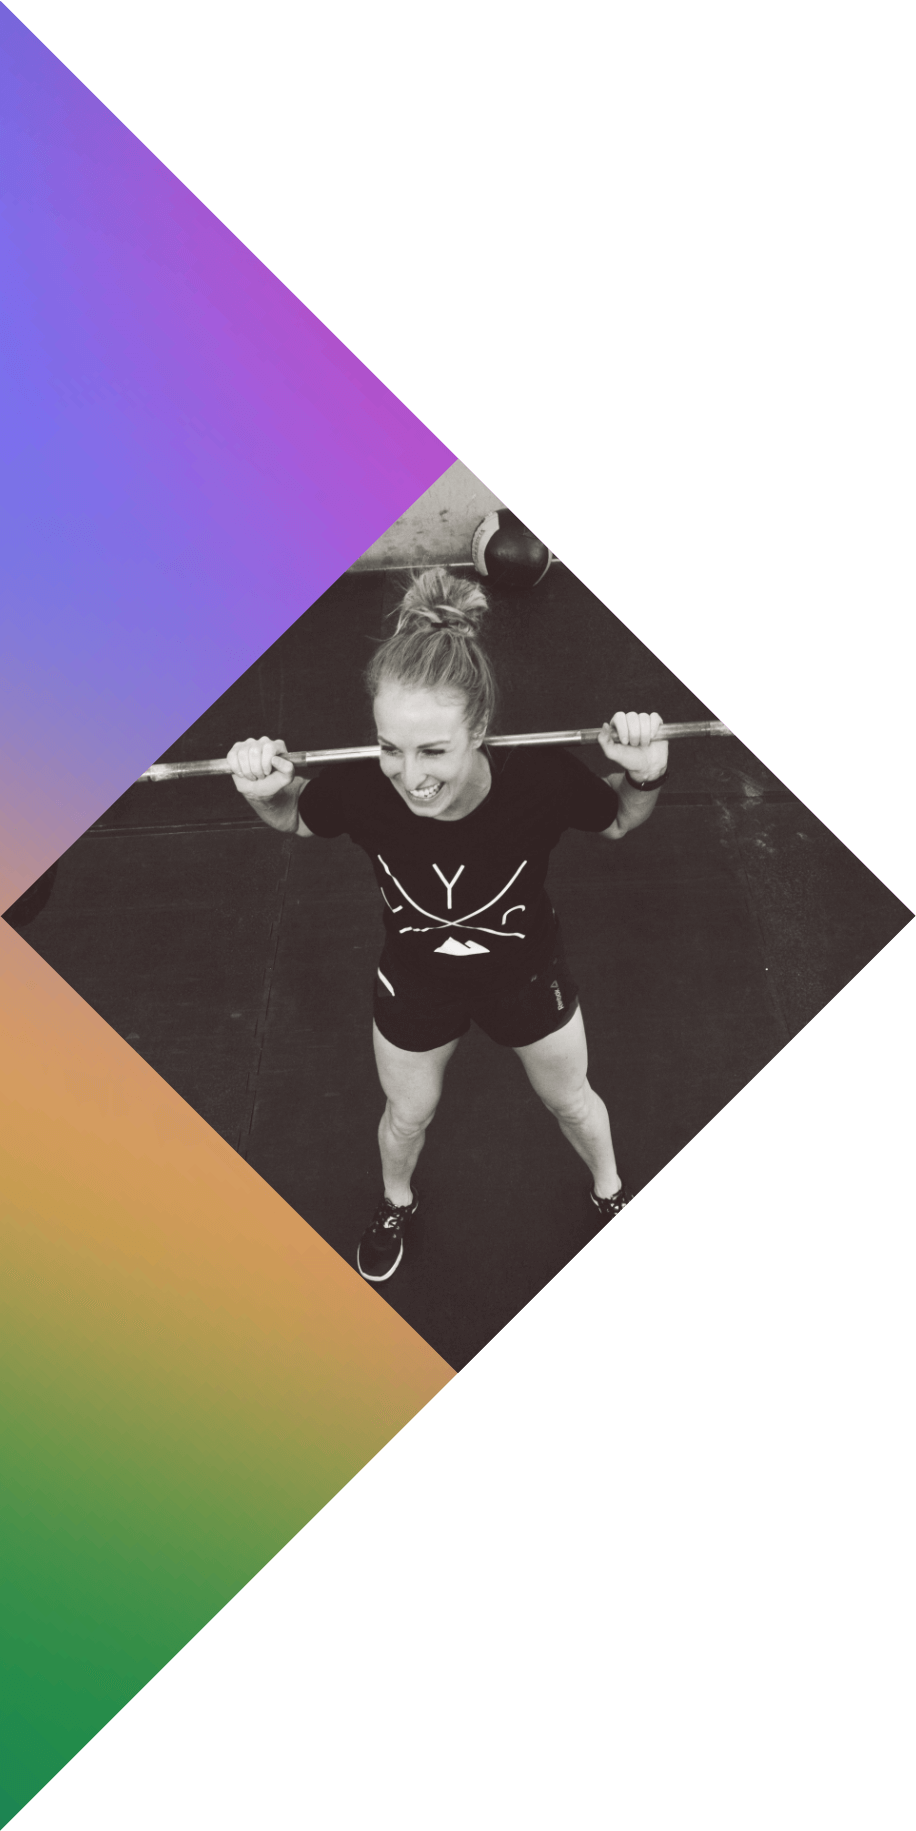 woman weight lifting at a gym, colour gradient background